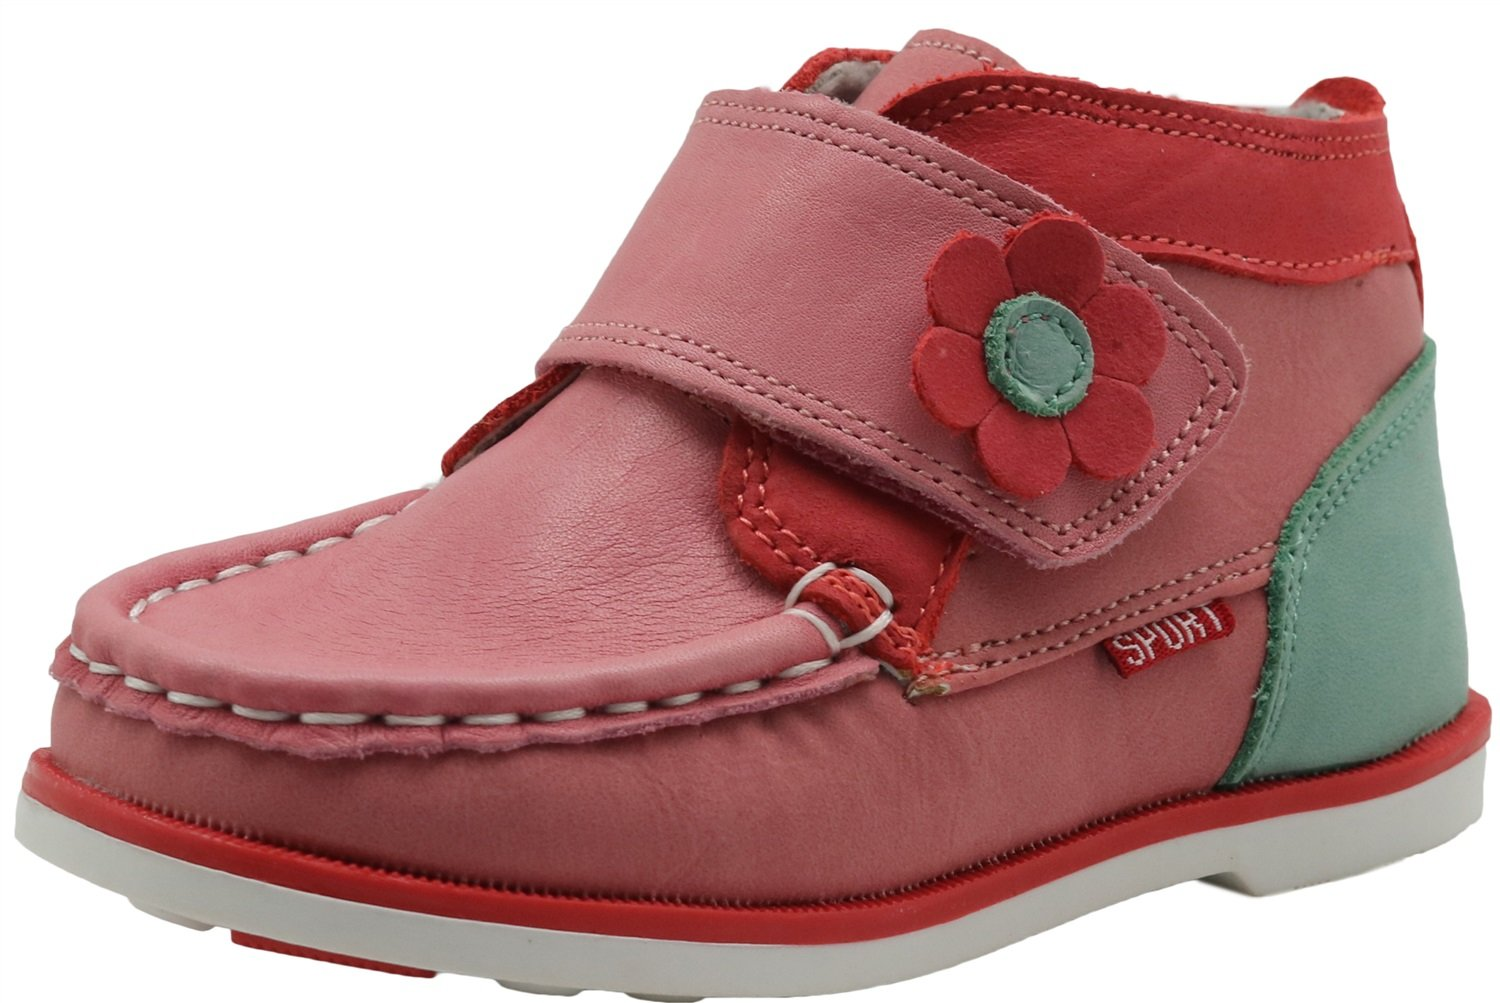 Non-Slip Toddler Girls Shoes Flower Spring Atumn Leather Boots with Arch Support Durable Color : Pink , Size : 7 M US Toddler